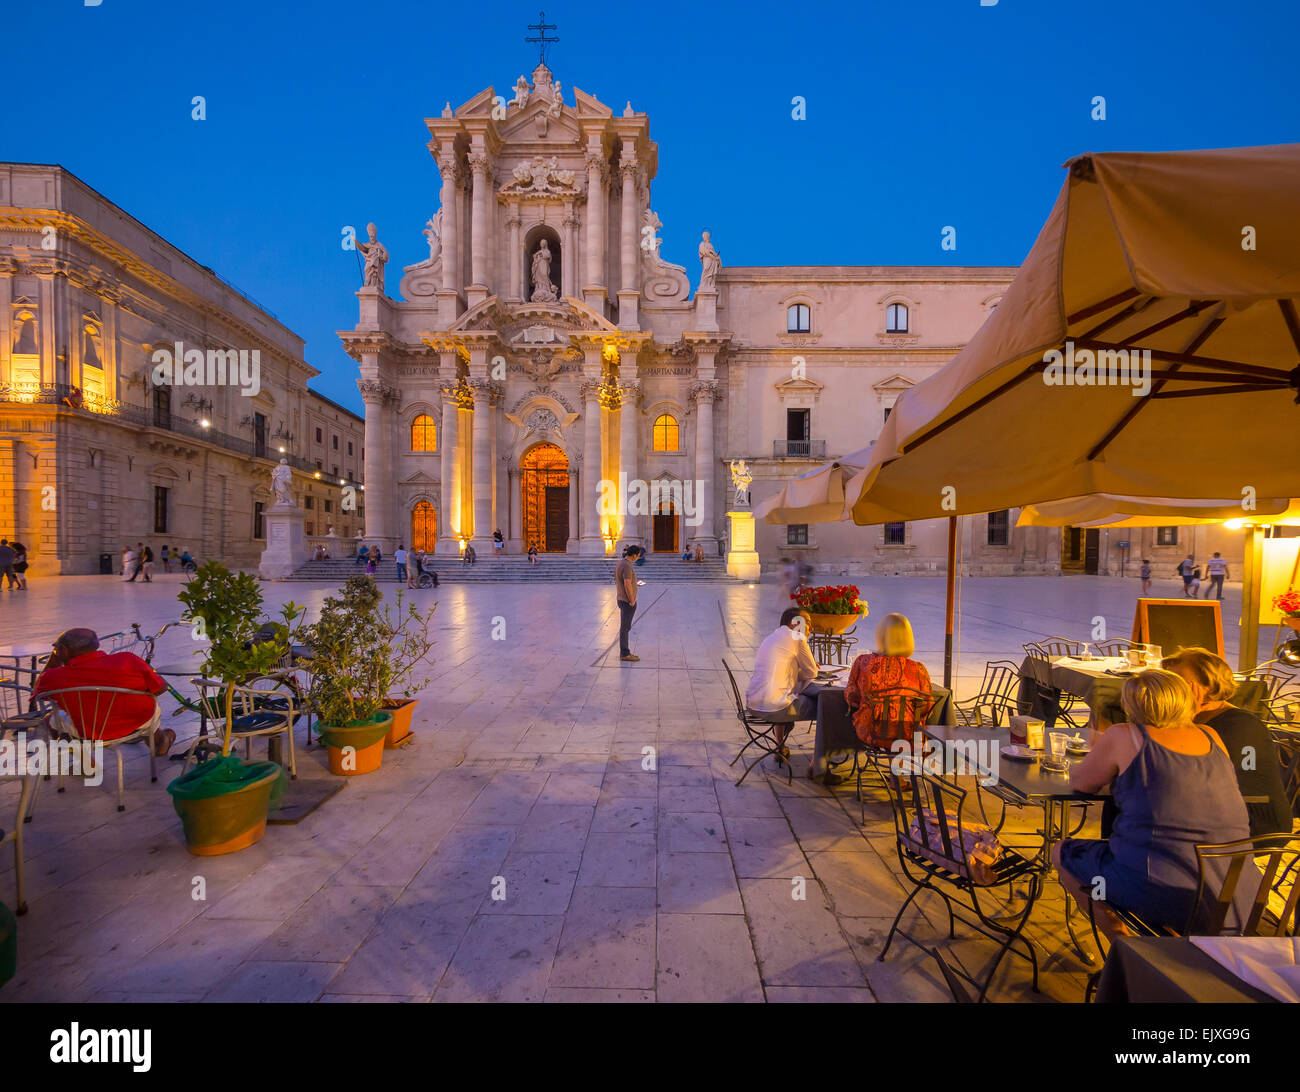 Italy, Sicily, Siracusa, cathedral at blue hour - Stock Image